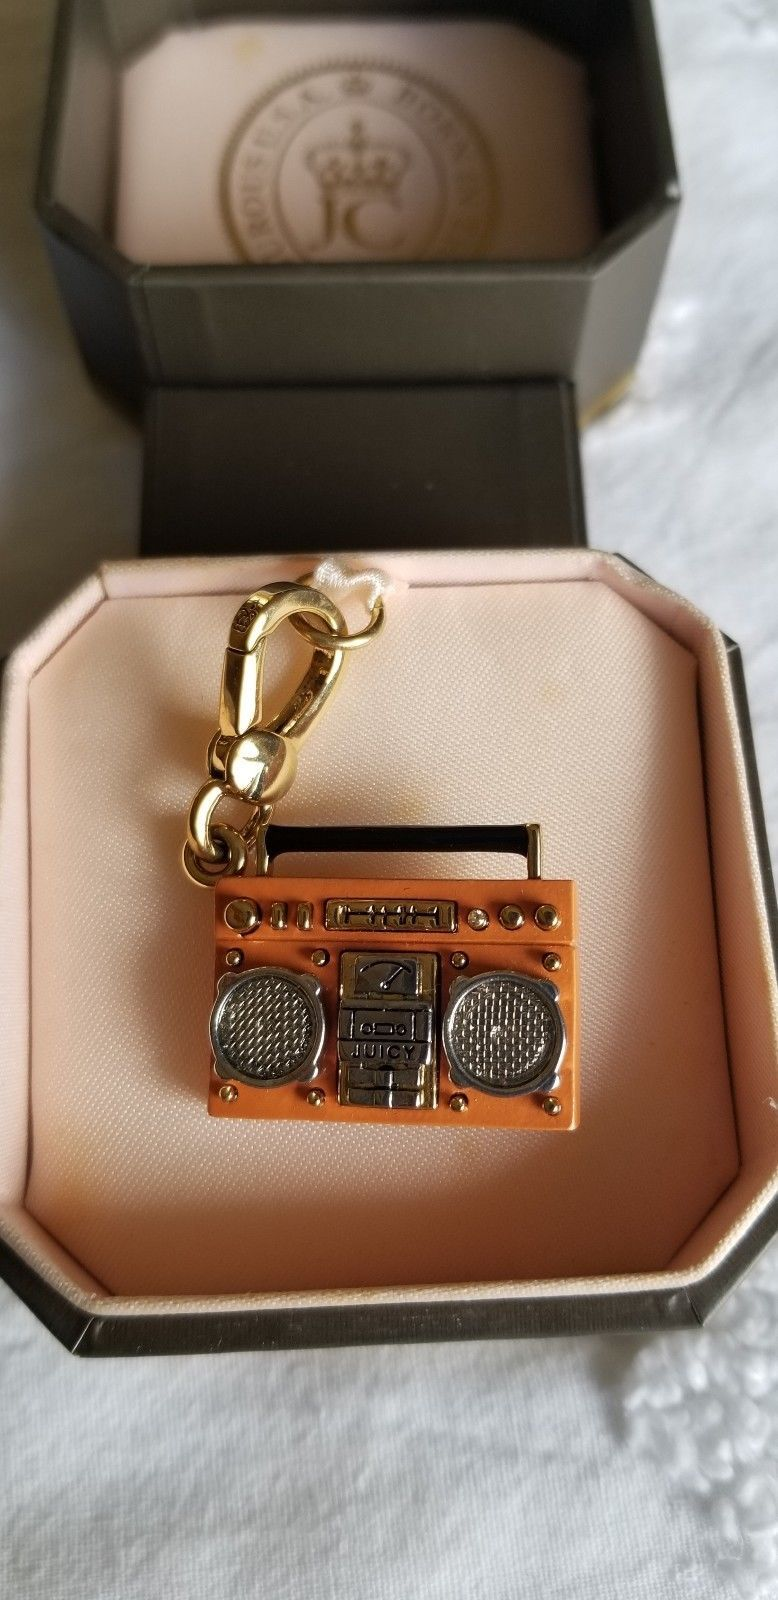 Primary image for Juicy Couture Retired Boombox Radio Charm with Box EUC